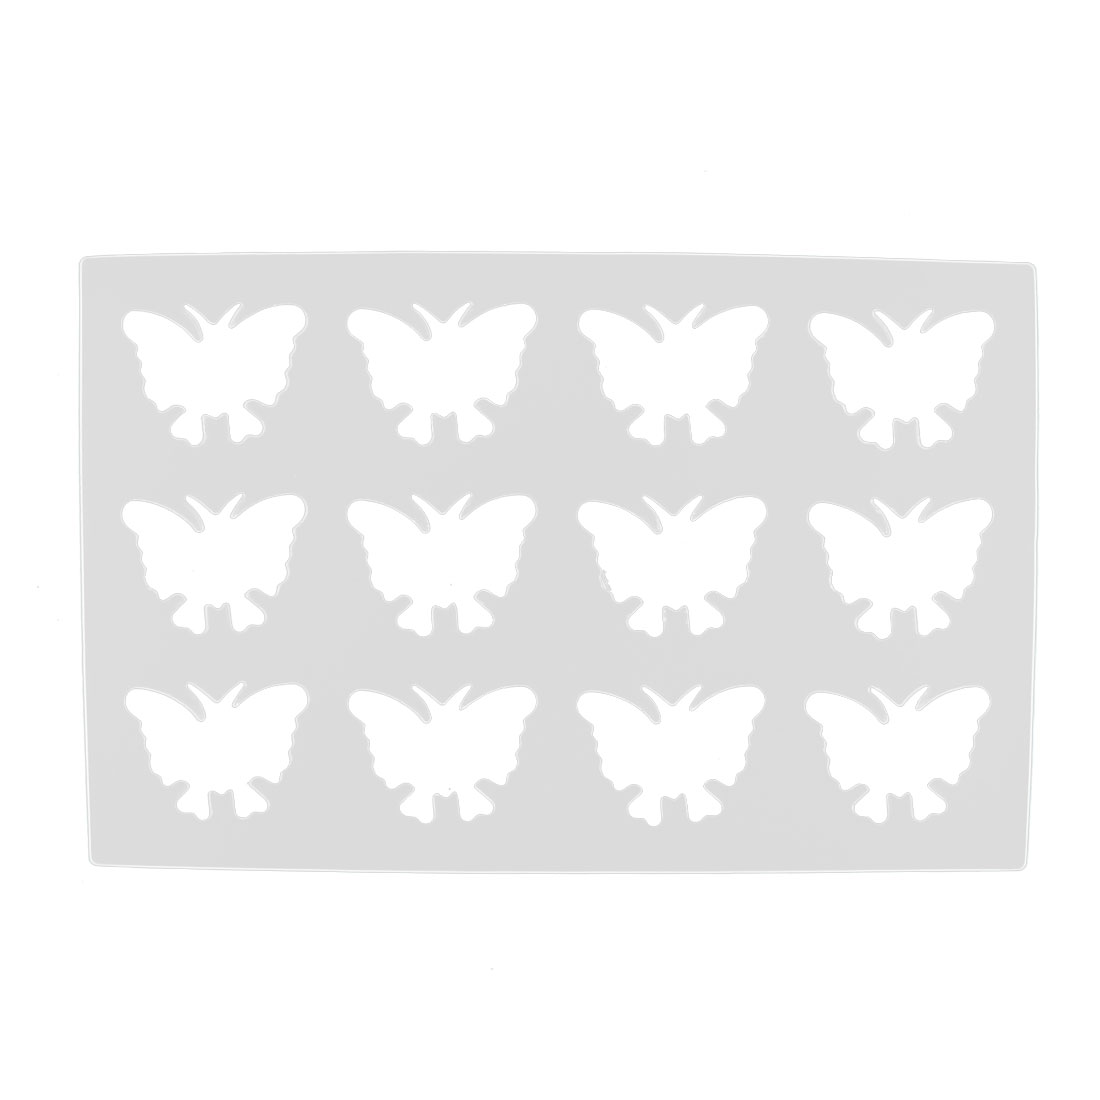 Plastic 12 Cavities Butterfly Design Chocolate Cake Mould